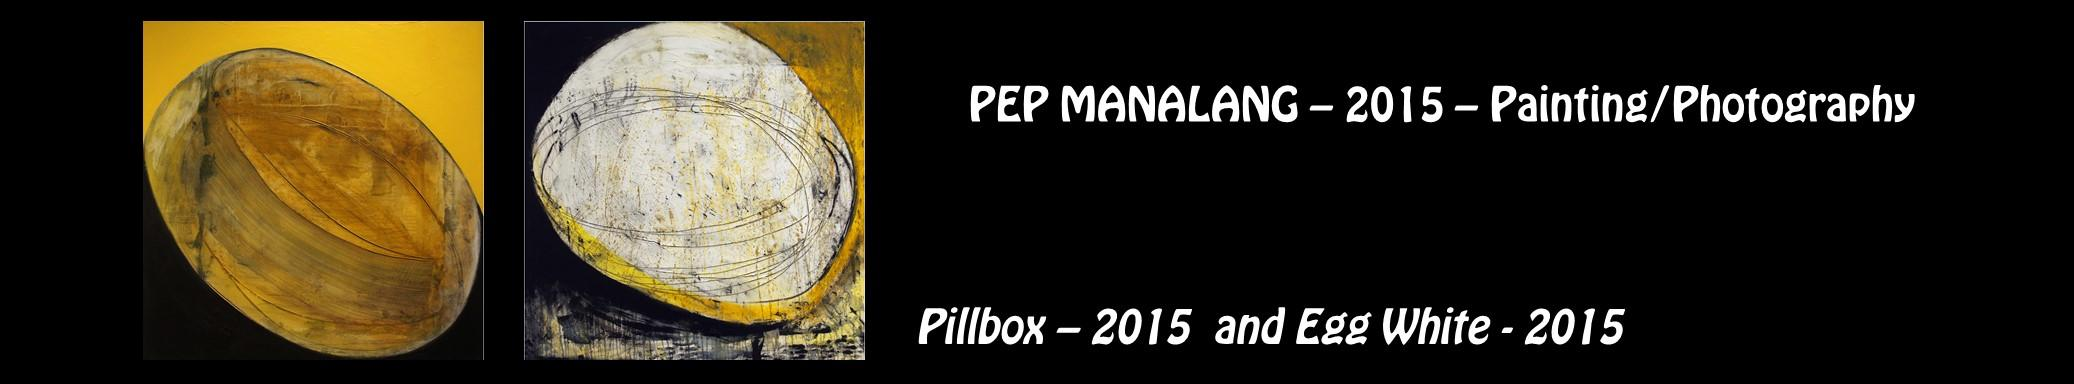 Pep Manalang - Painting, photography, Pillbox - 2015 - and Egg White - 2015